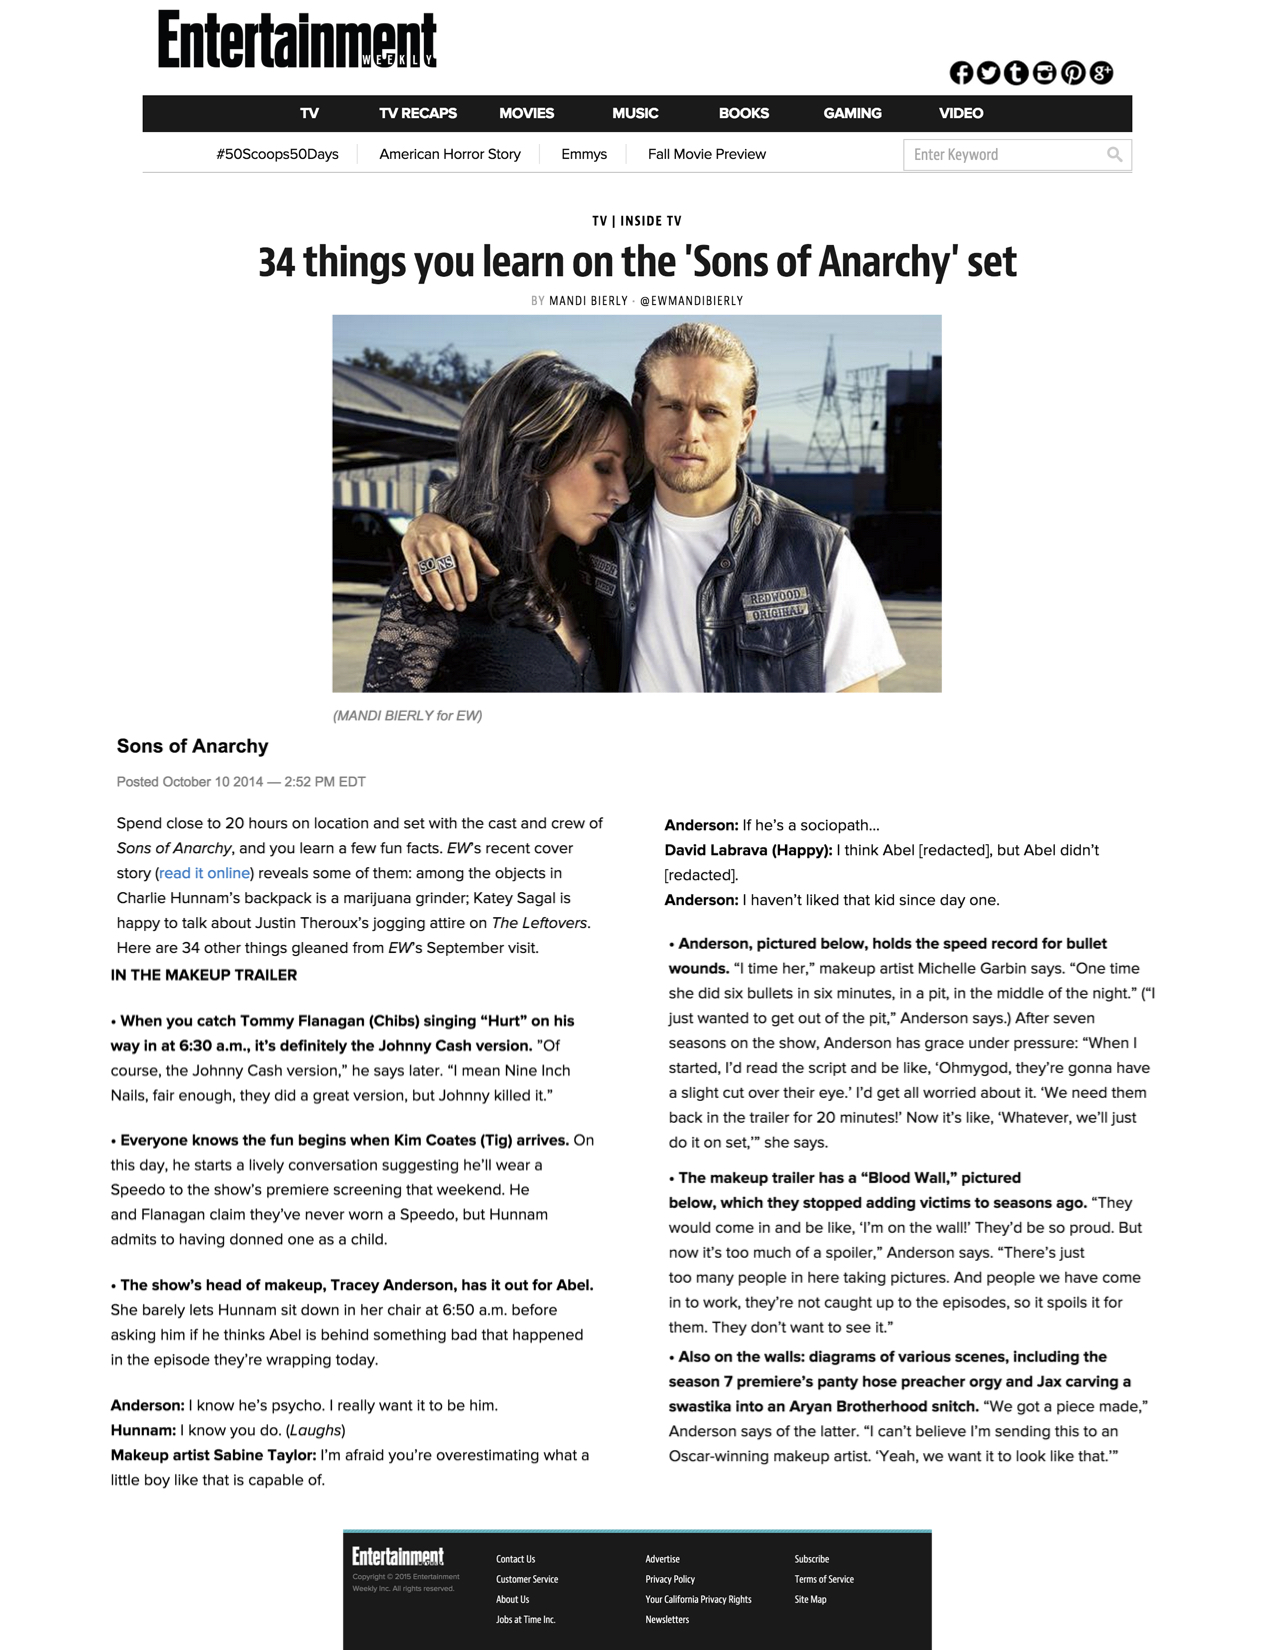 EW - 34 Things You Learn on the SOA set .jpg